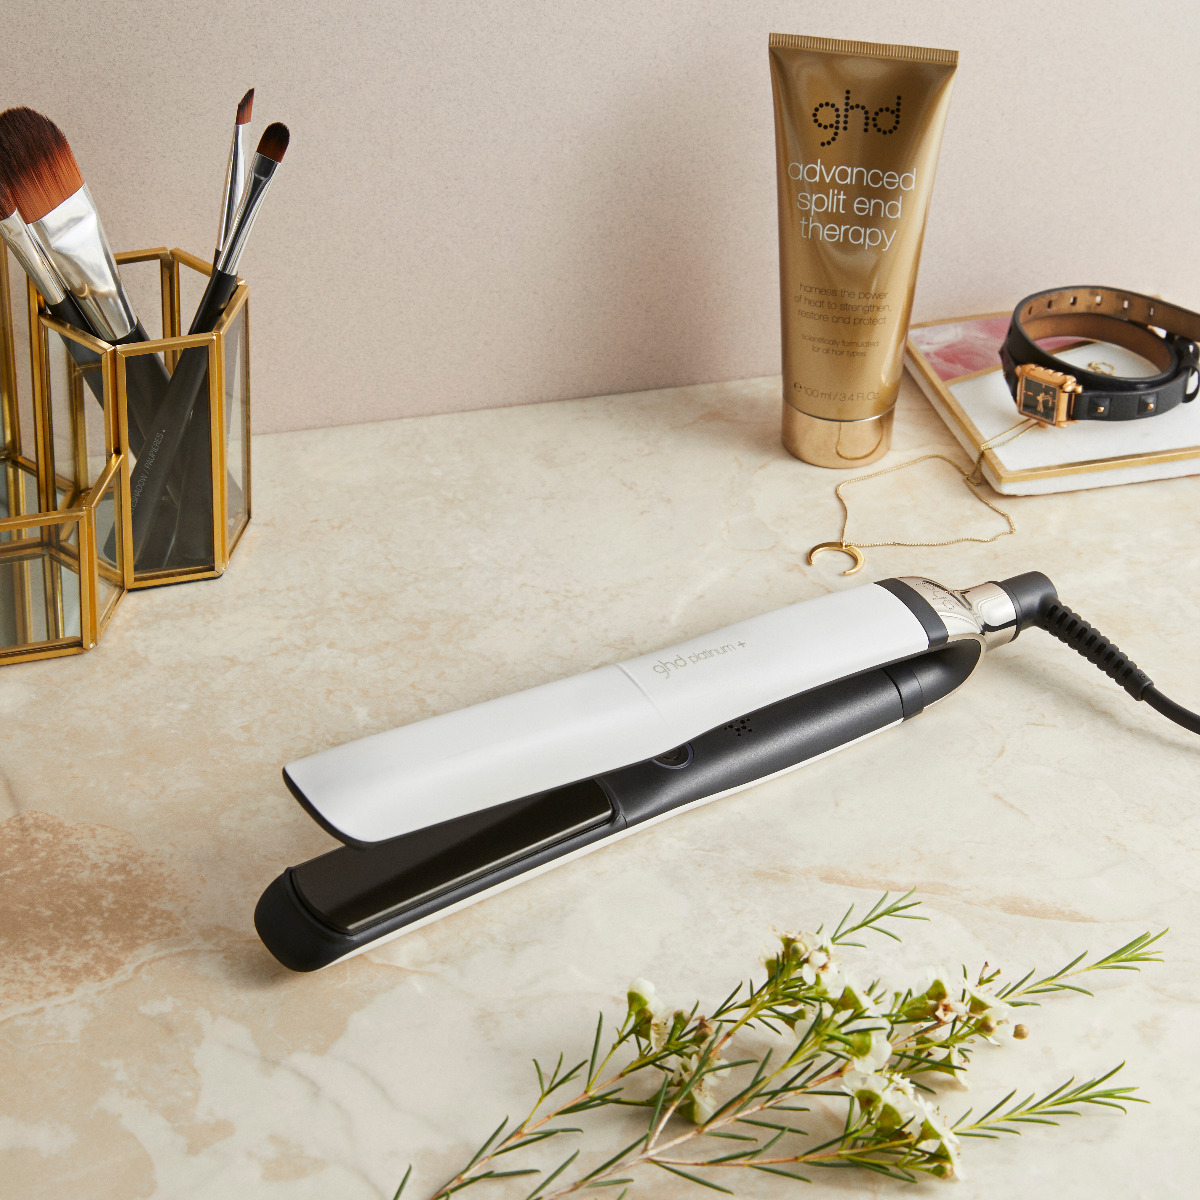 styler ghd platinum+ et soin advanced split end therapy  width